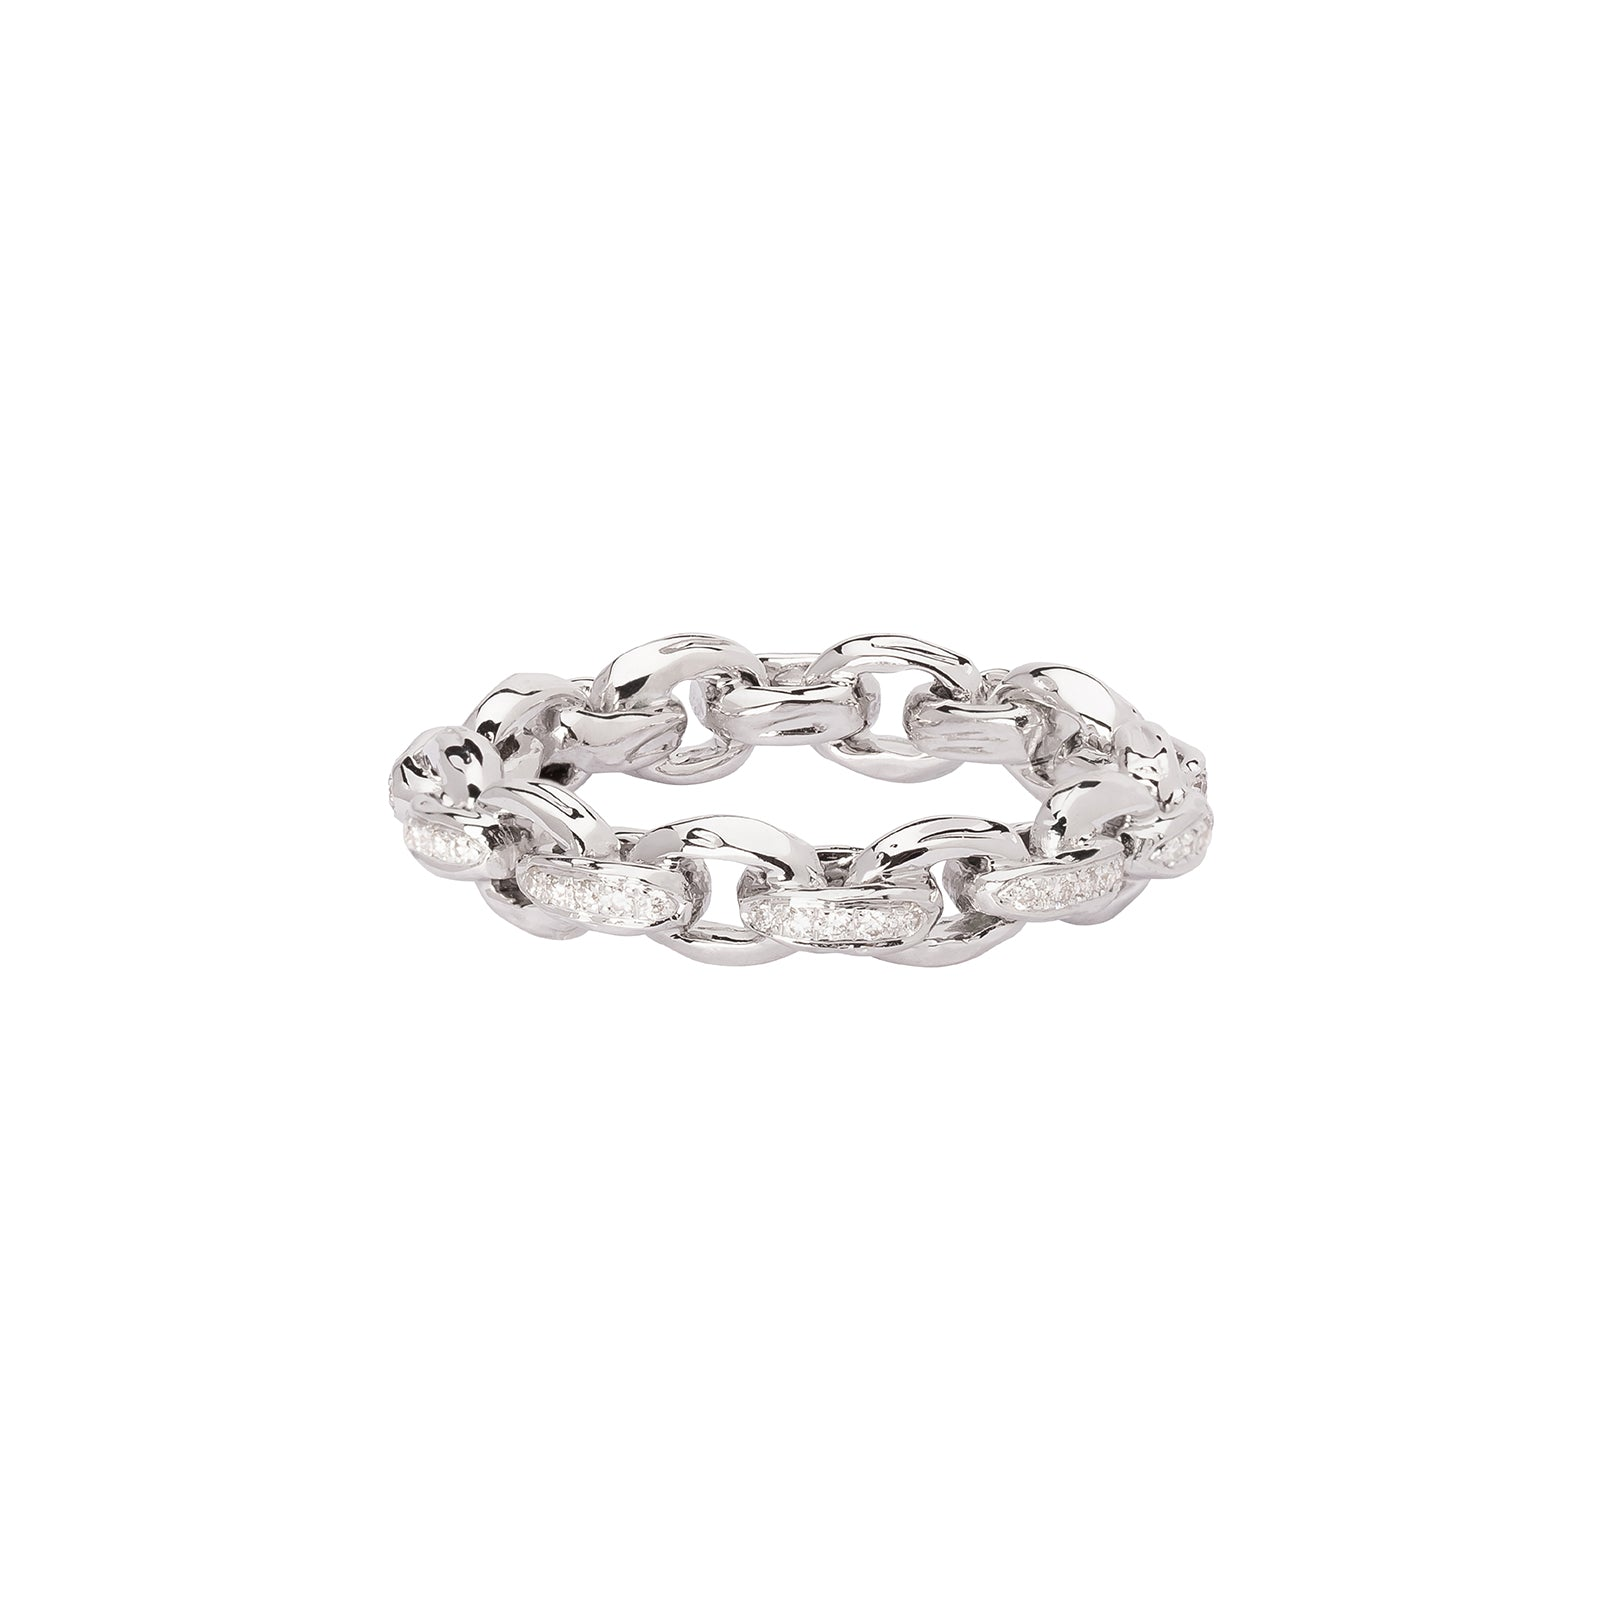 Patcharavipa Diamond Chain Row Ring - White Gold - Rings - Broken English Jewelry